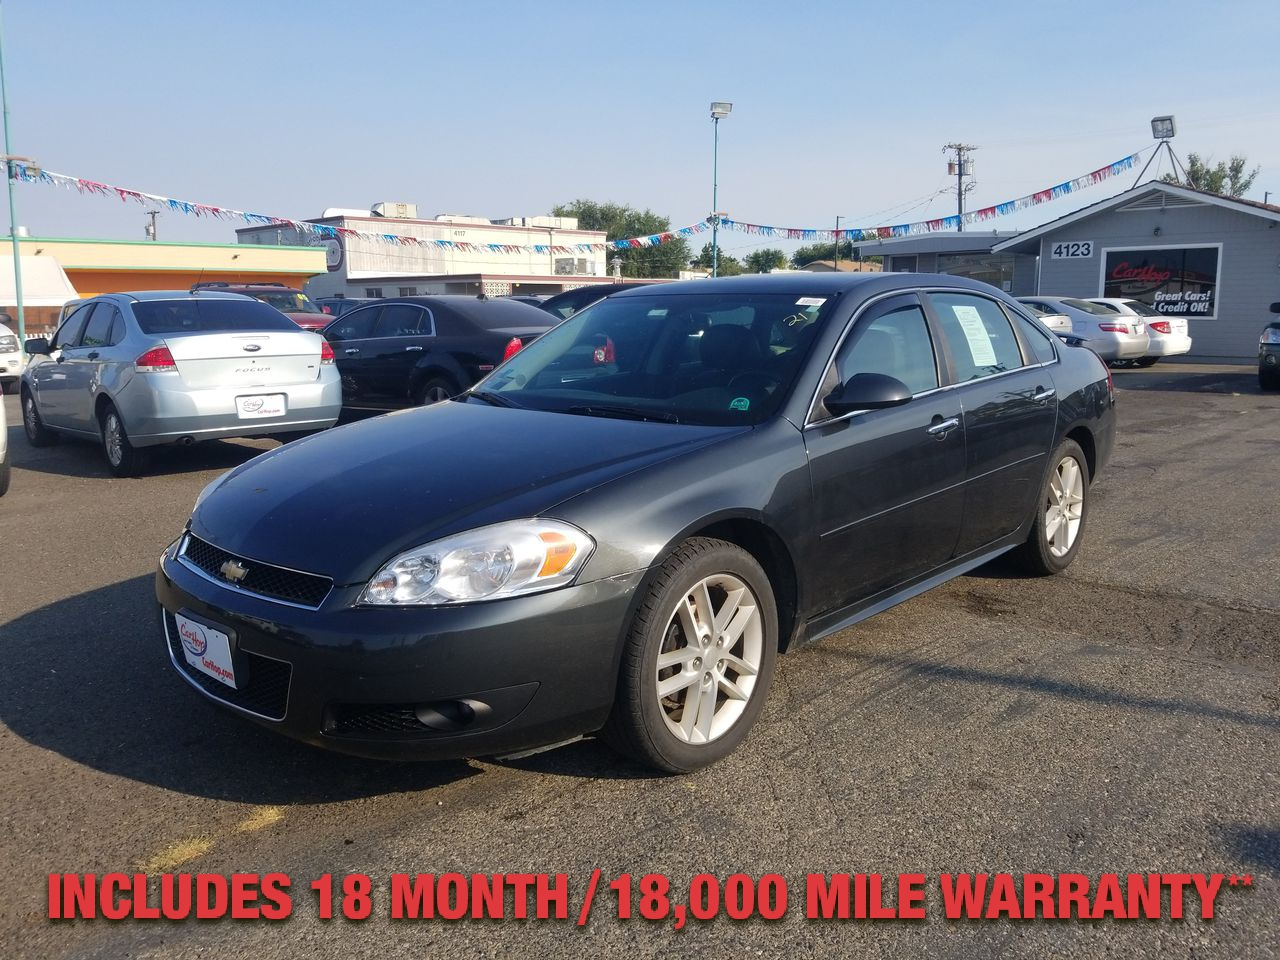 Pre-Owned 2013 CHEVROLET IMPALA LTZ Sedan